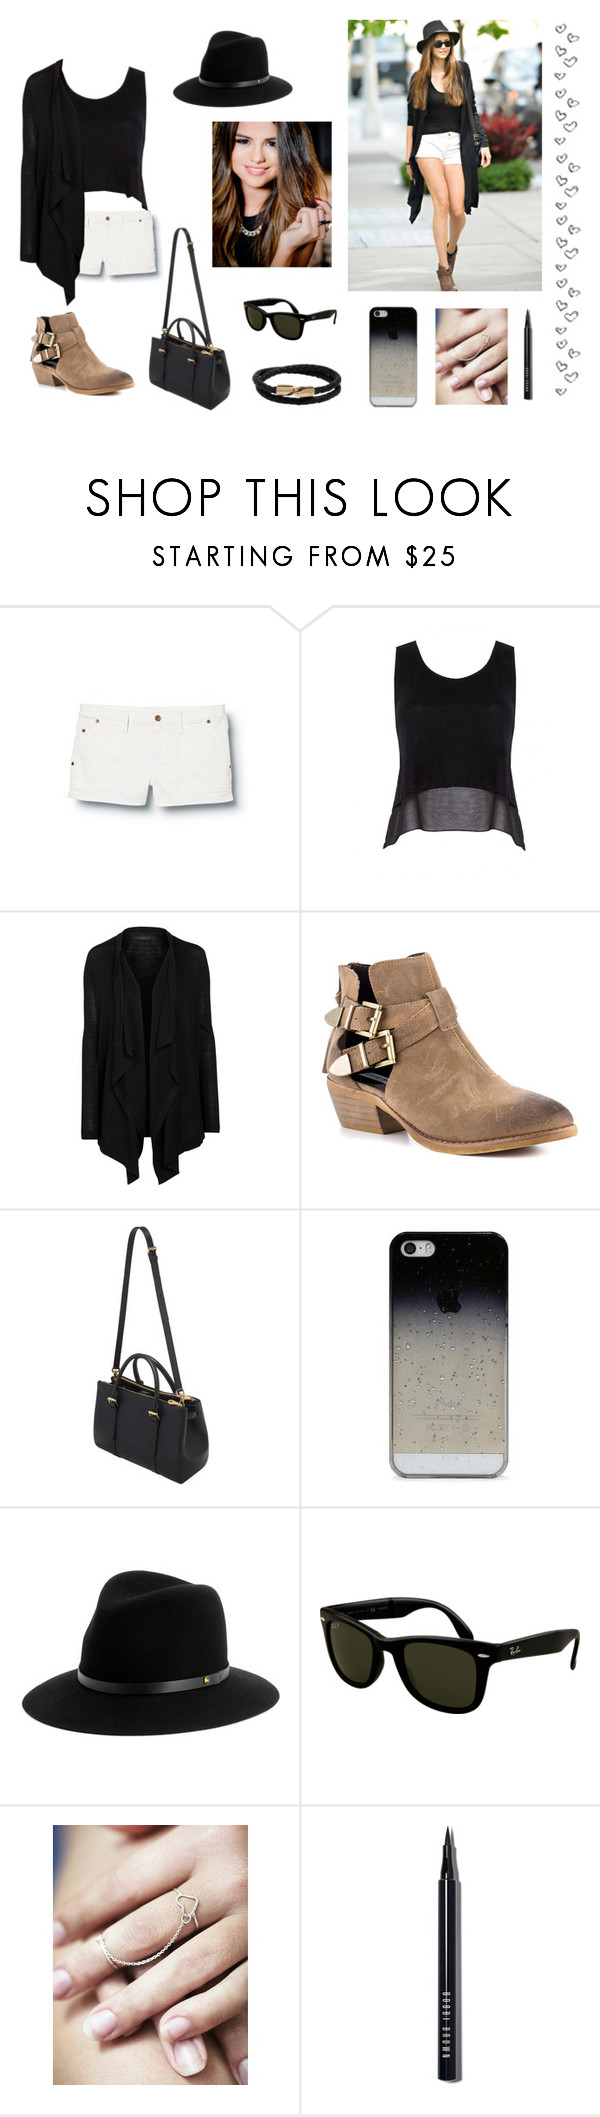 """""""PERFECT"""" by carolina-onedirection ❤ liked on Polyvore featuring Quiksilver, Alice + Olivia, Minimum, Steve Madden, Mulberry, BlissfulCASE, rag & bone, Free People, Bobbi Brown Cosmetics and modern"""